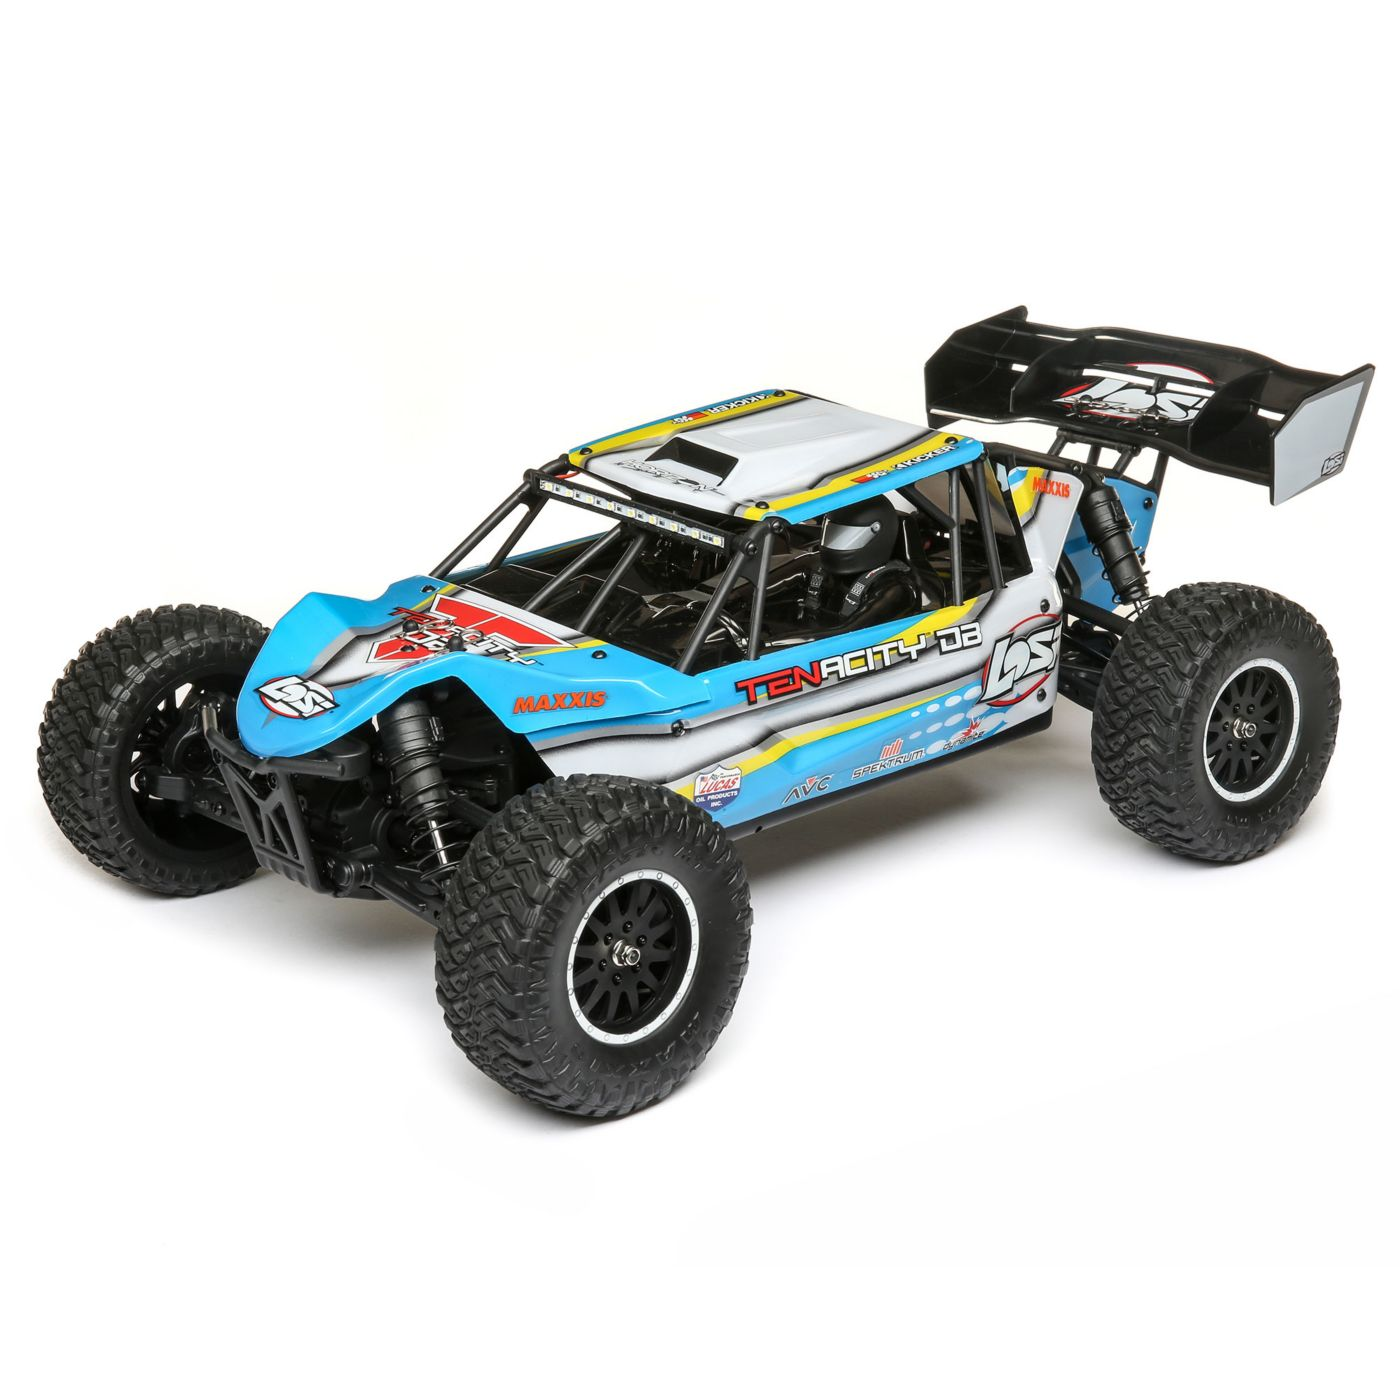 New, Lower Prices on Select Losi Tenacity Models